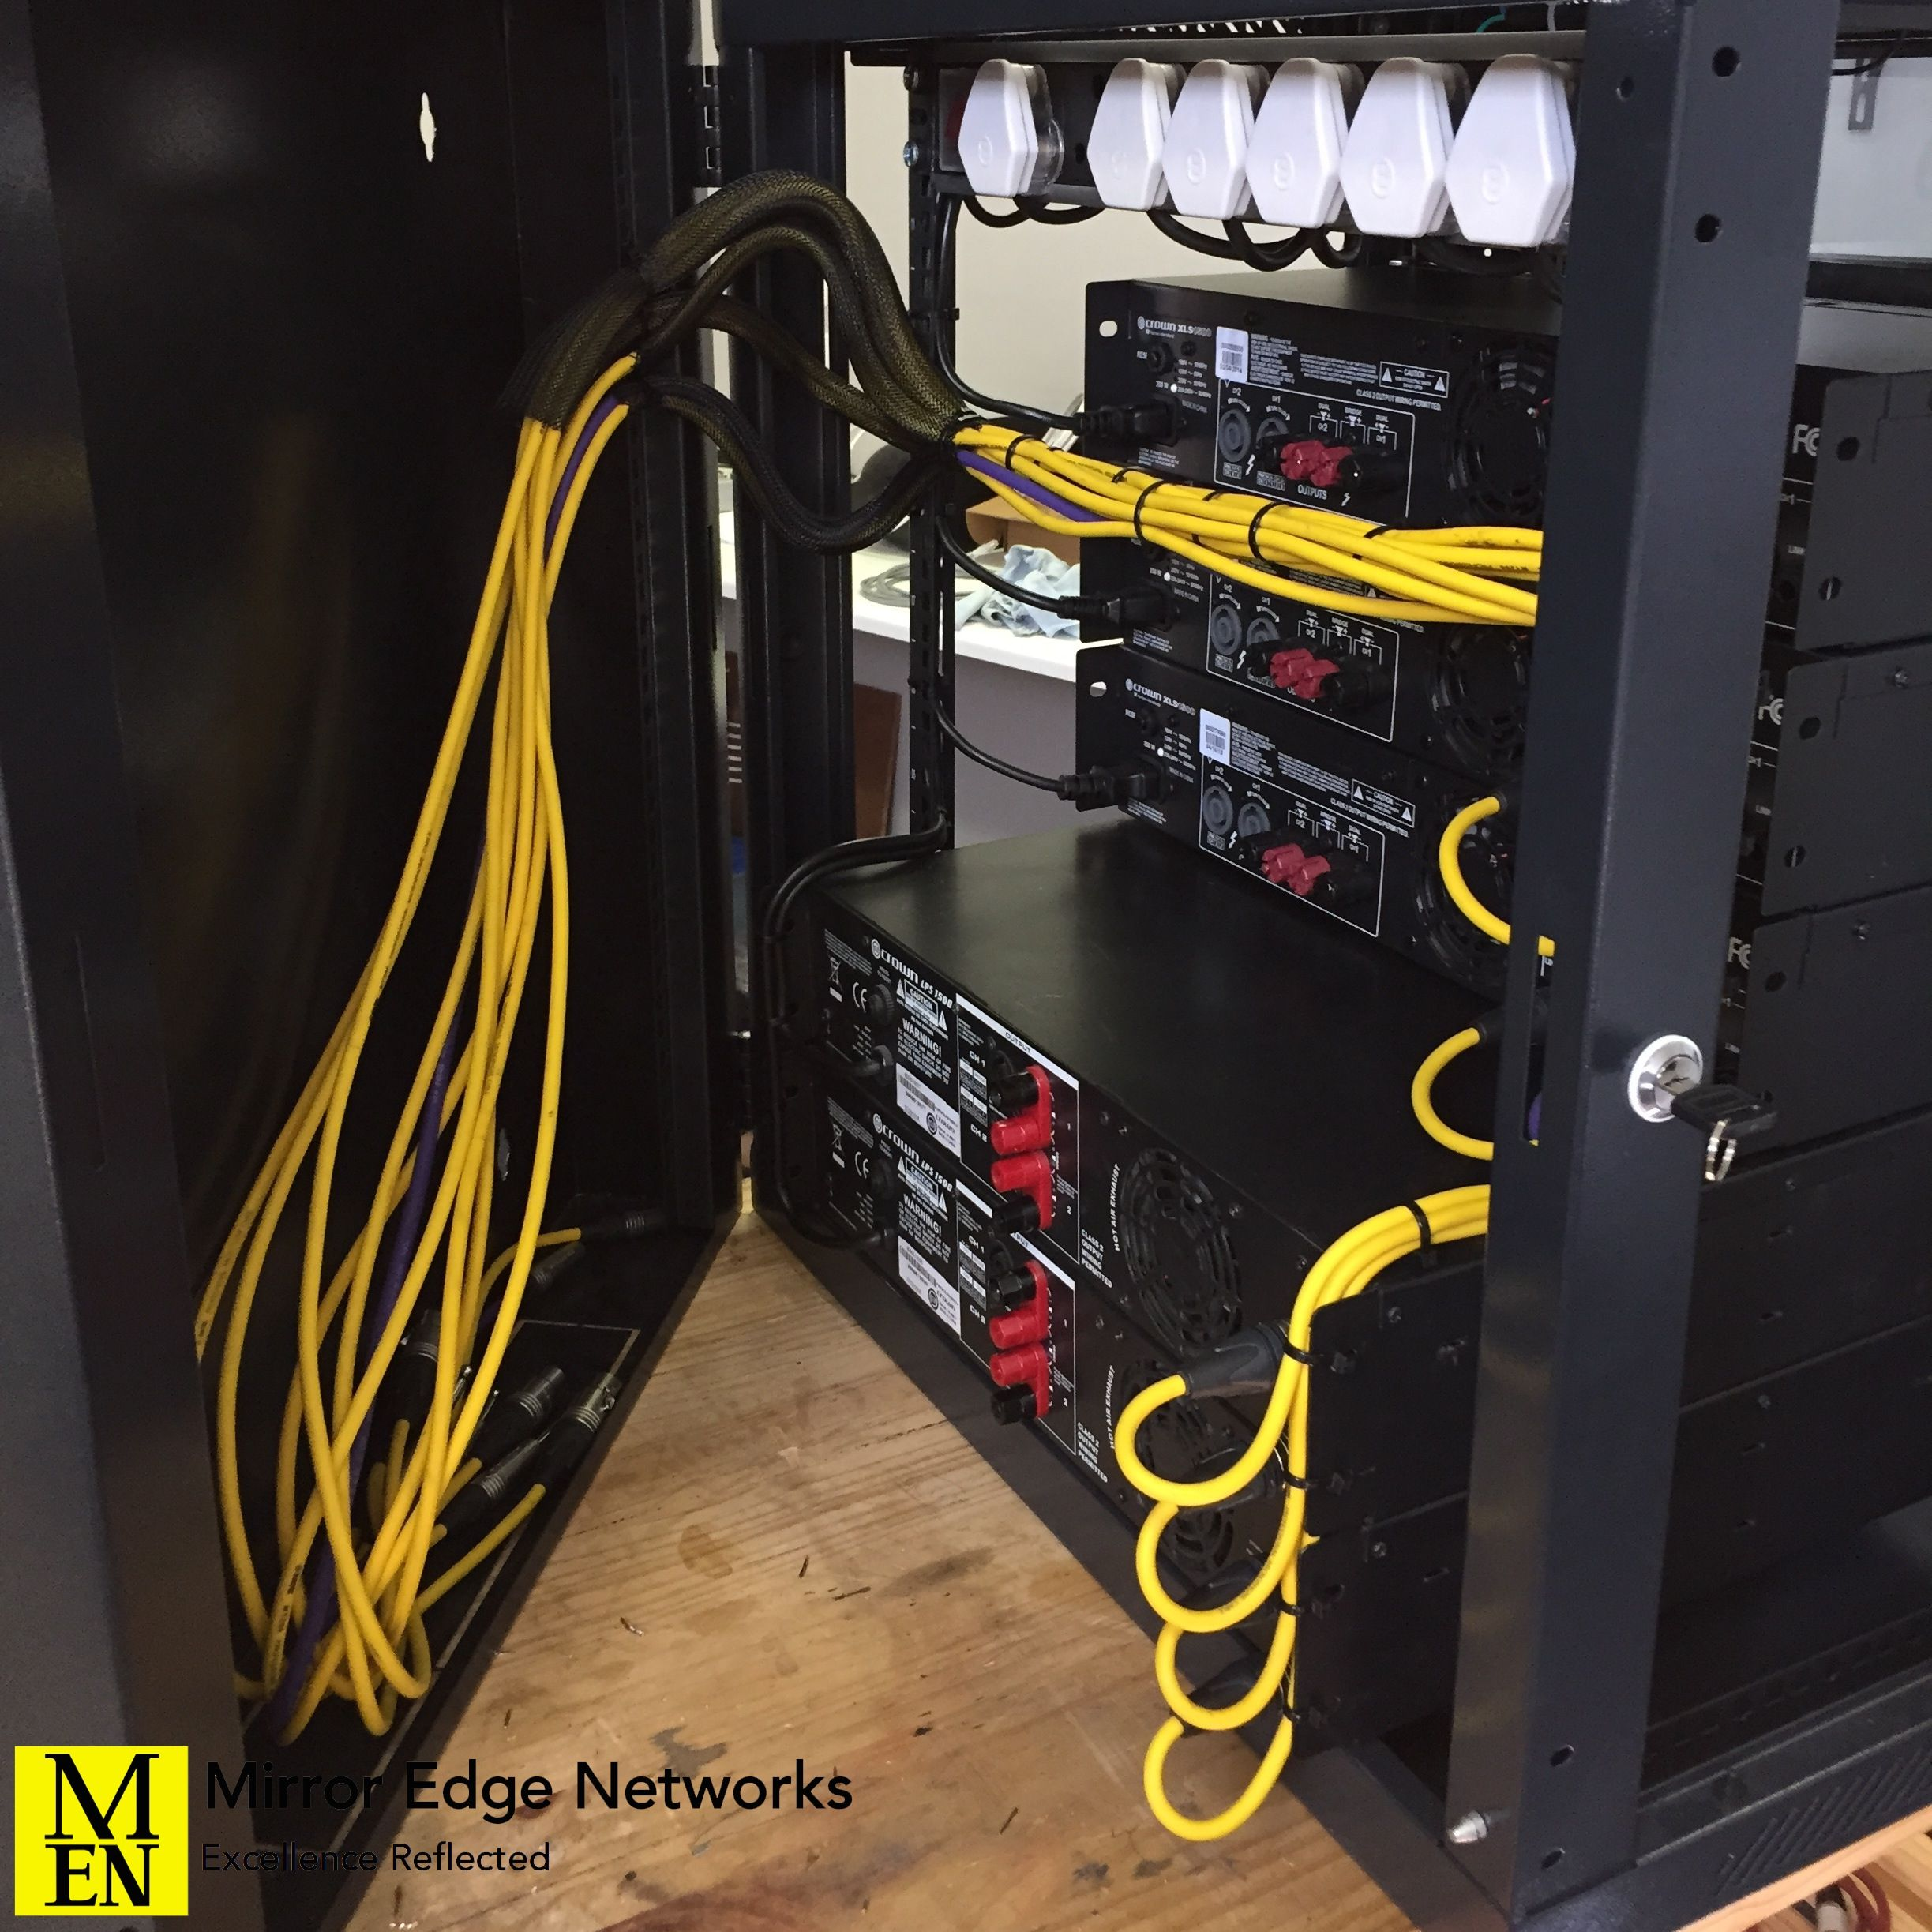 Audio Rack Wiring Auto Electrical Diagram Navistar Cat Ct13 Engine Restaurant System Amplifier Cabling